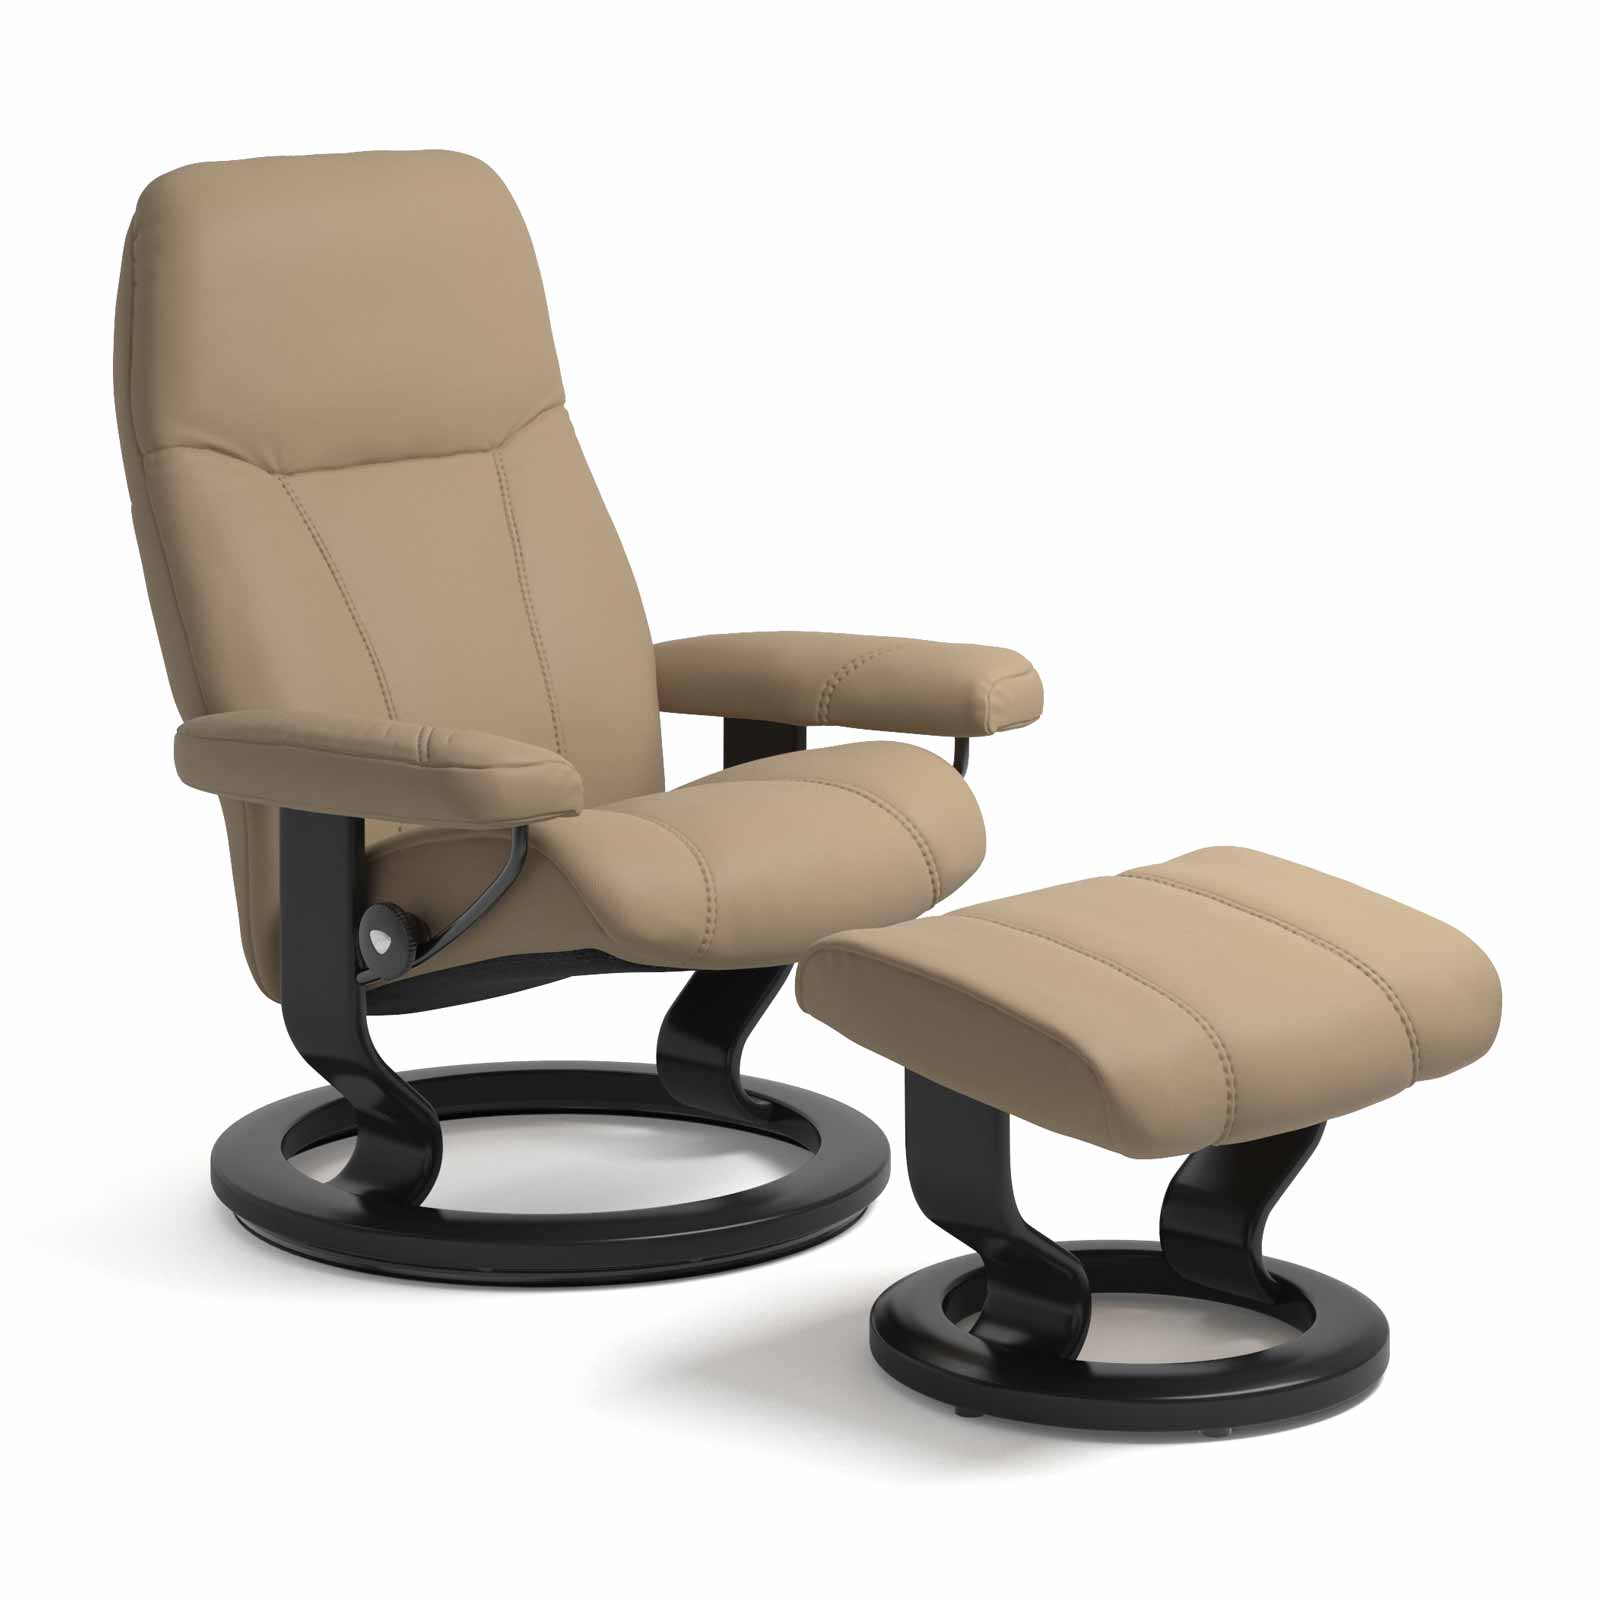 Stressless Sessel Aktion Stressless Consul Classic Paloma Funghi Mit Hocker